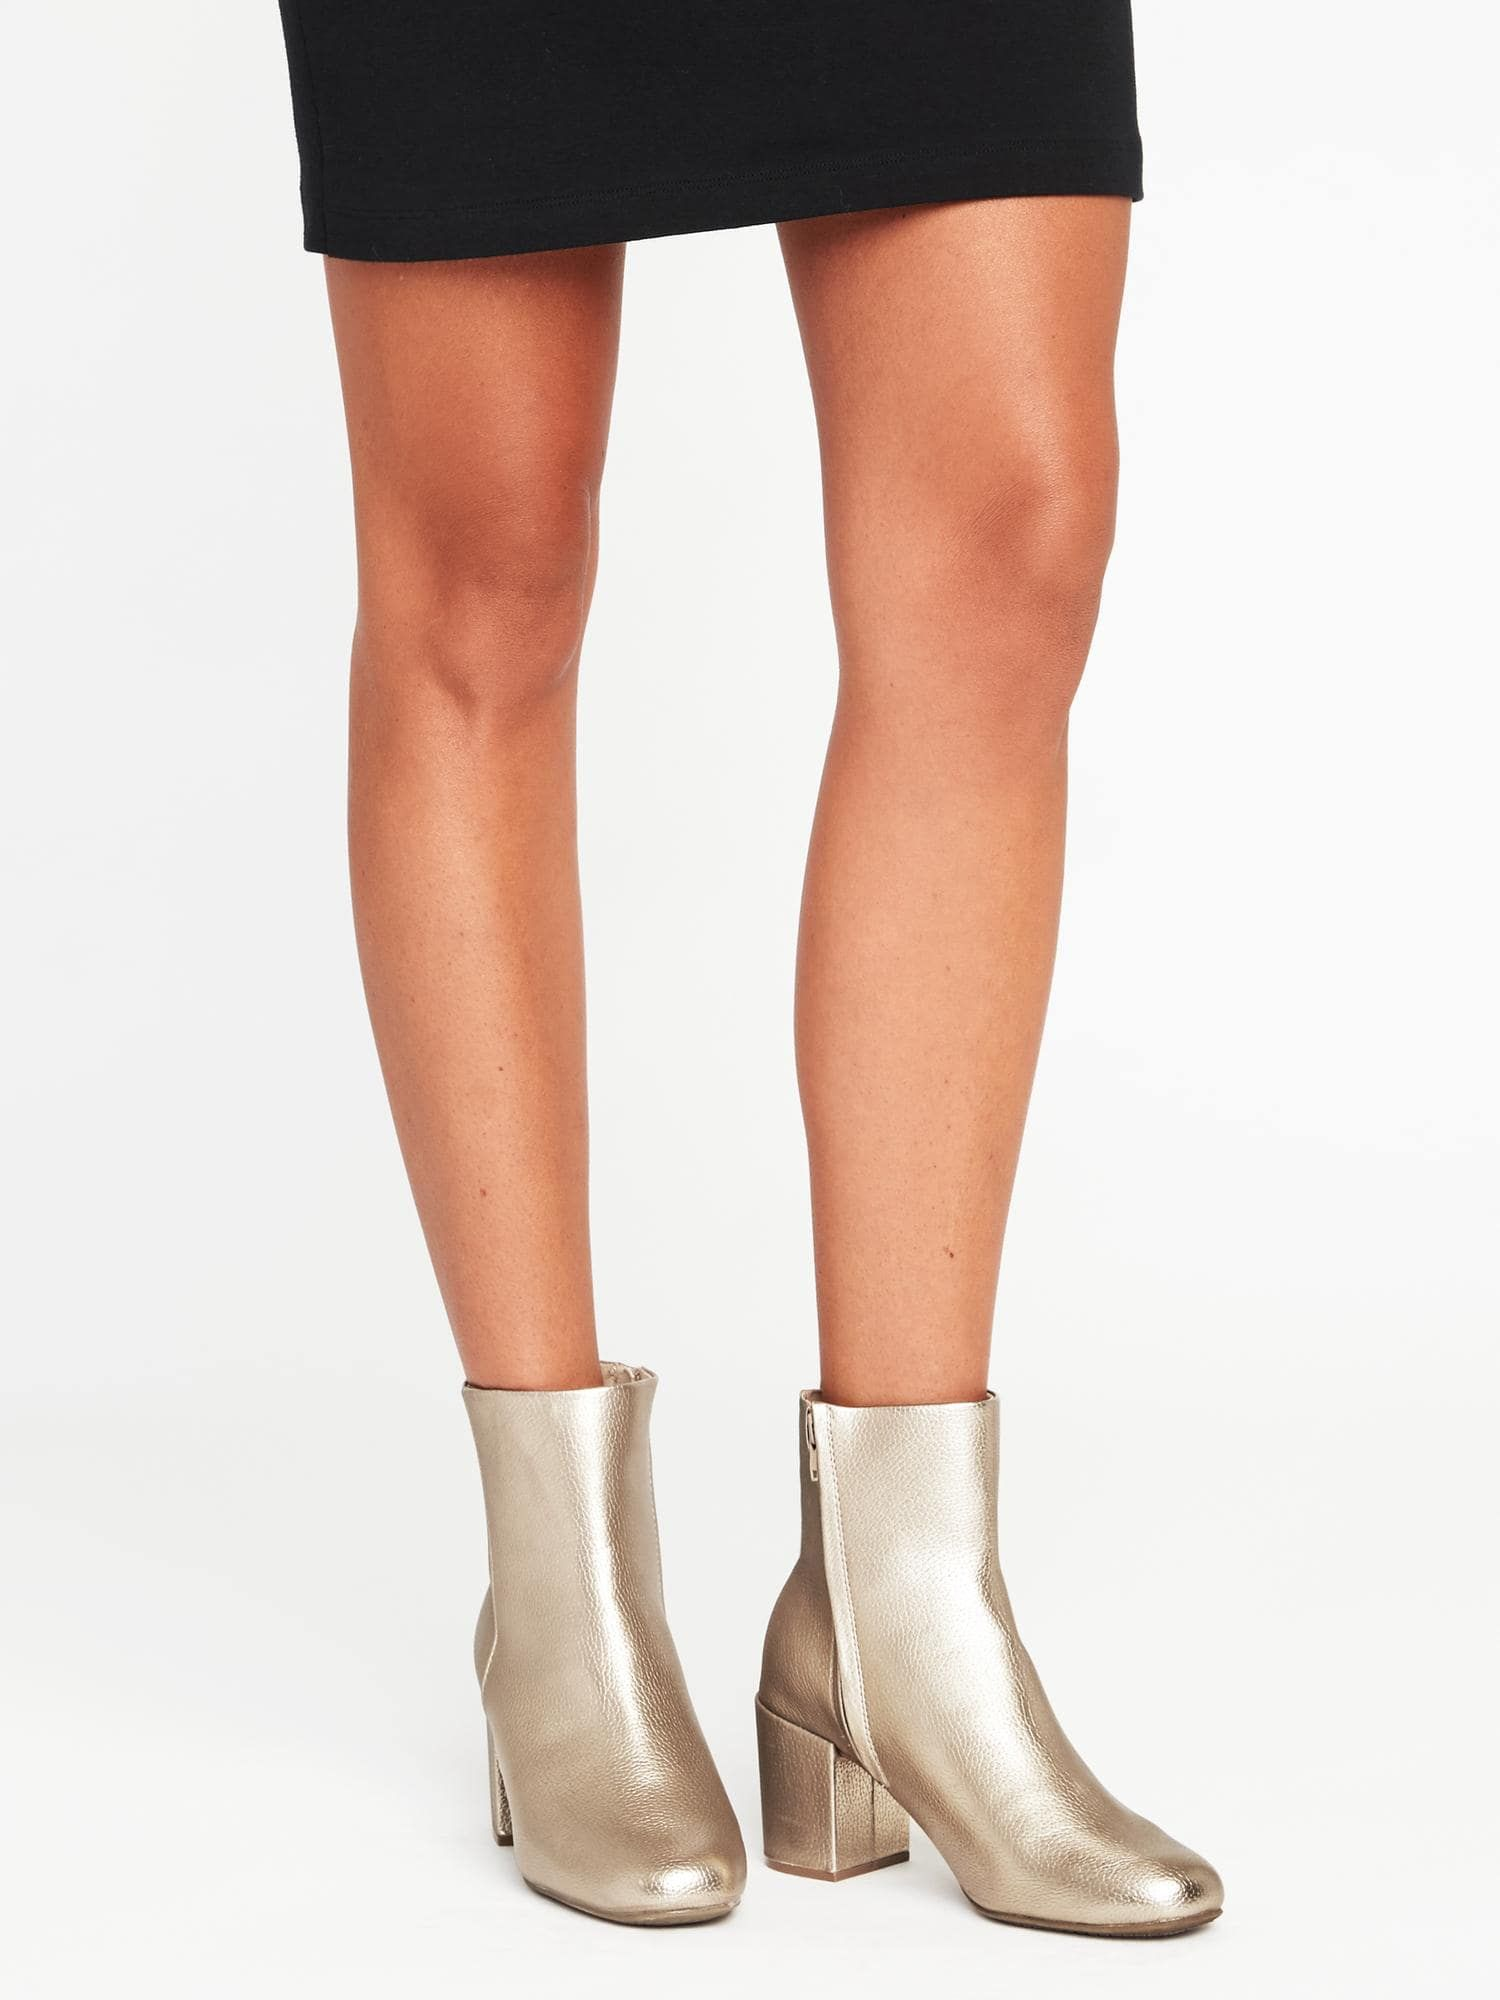 gold boots from old navy | Heel boots